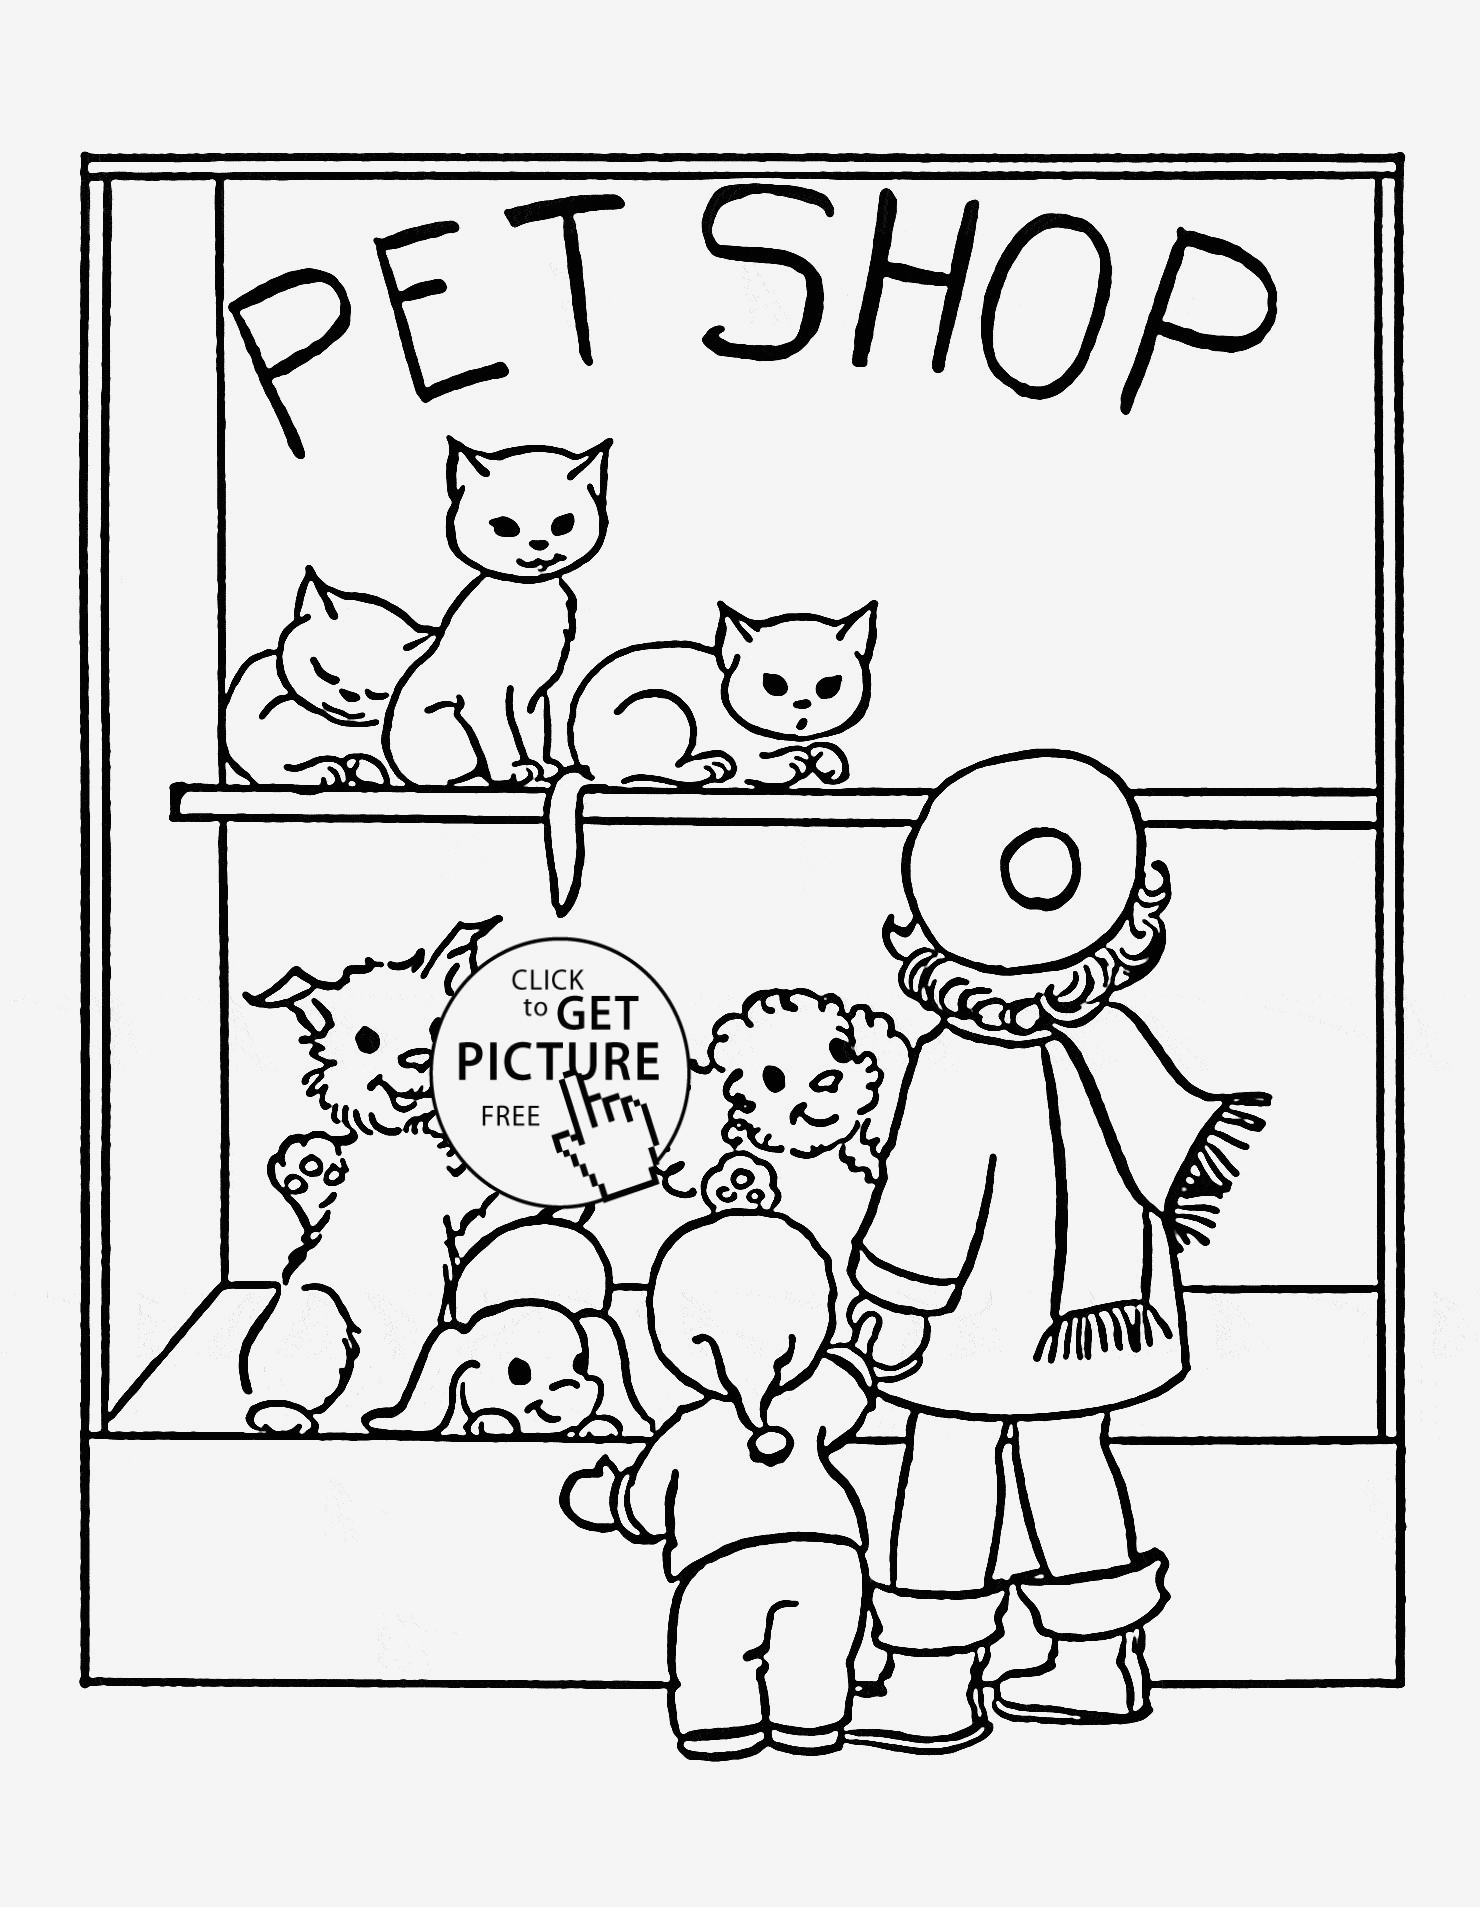 cute coloring pages to print Download-Pretty Coloring Pages Amazing Advantages Cute Dog Coloring Pages Elegant Cute Coloring Pages Fresh to 10-q